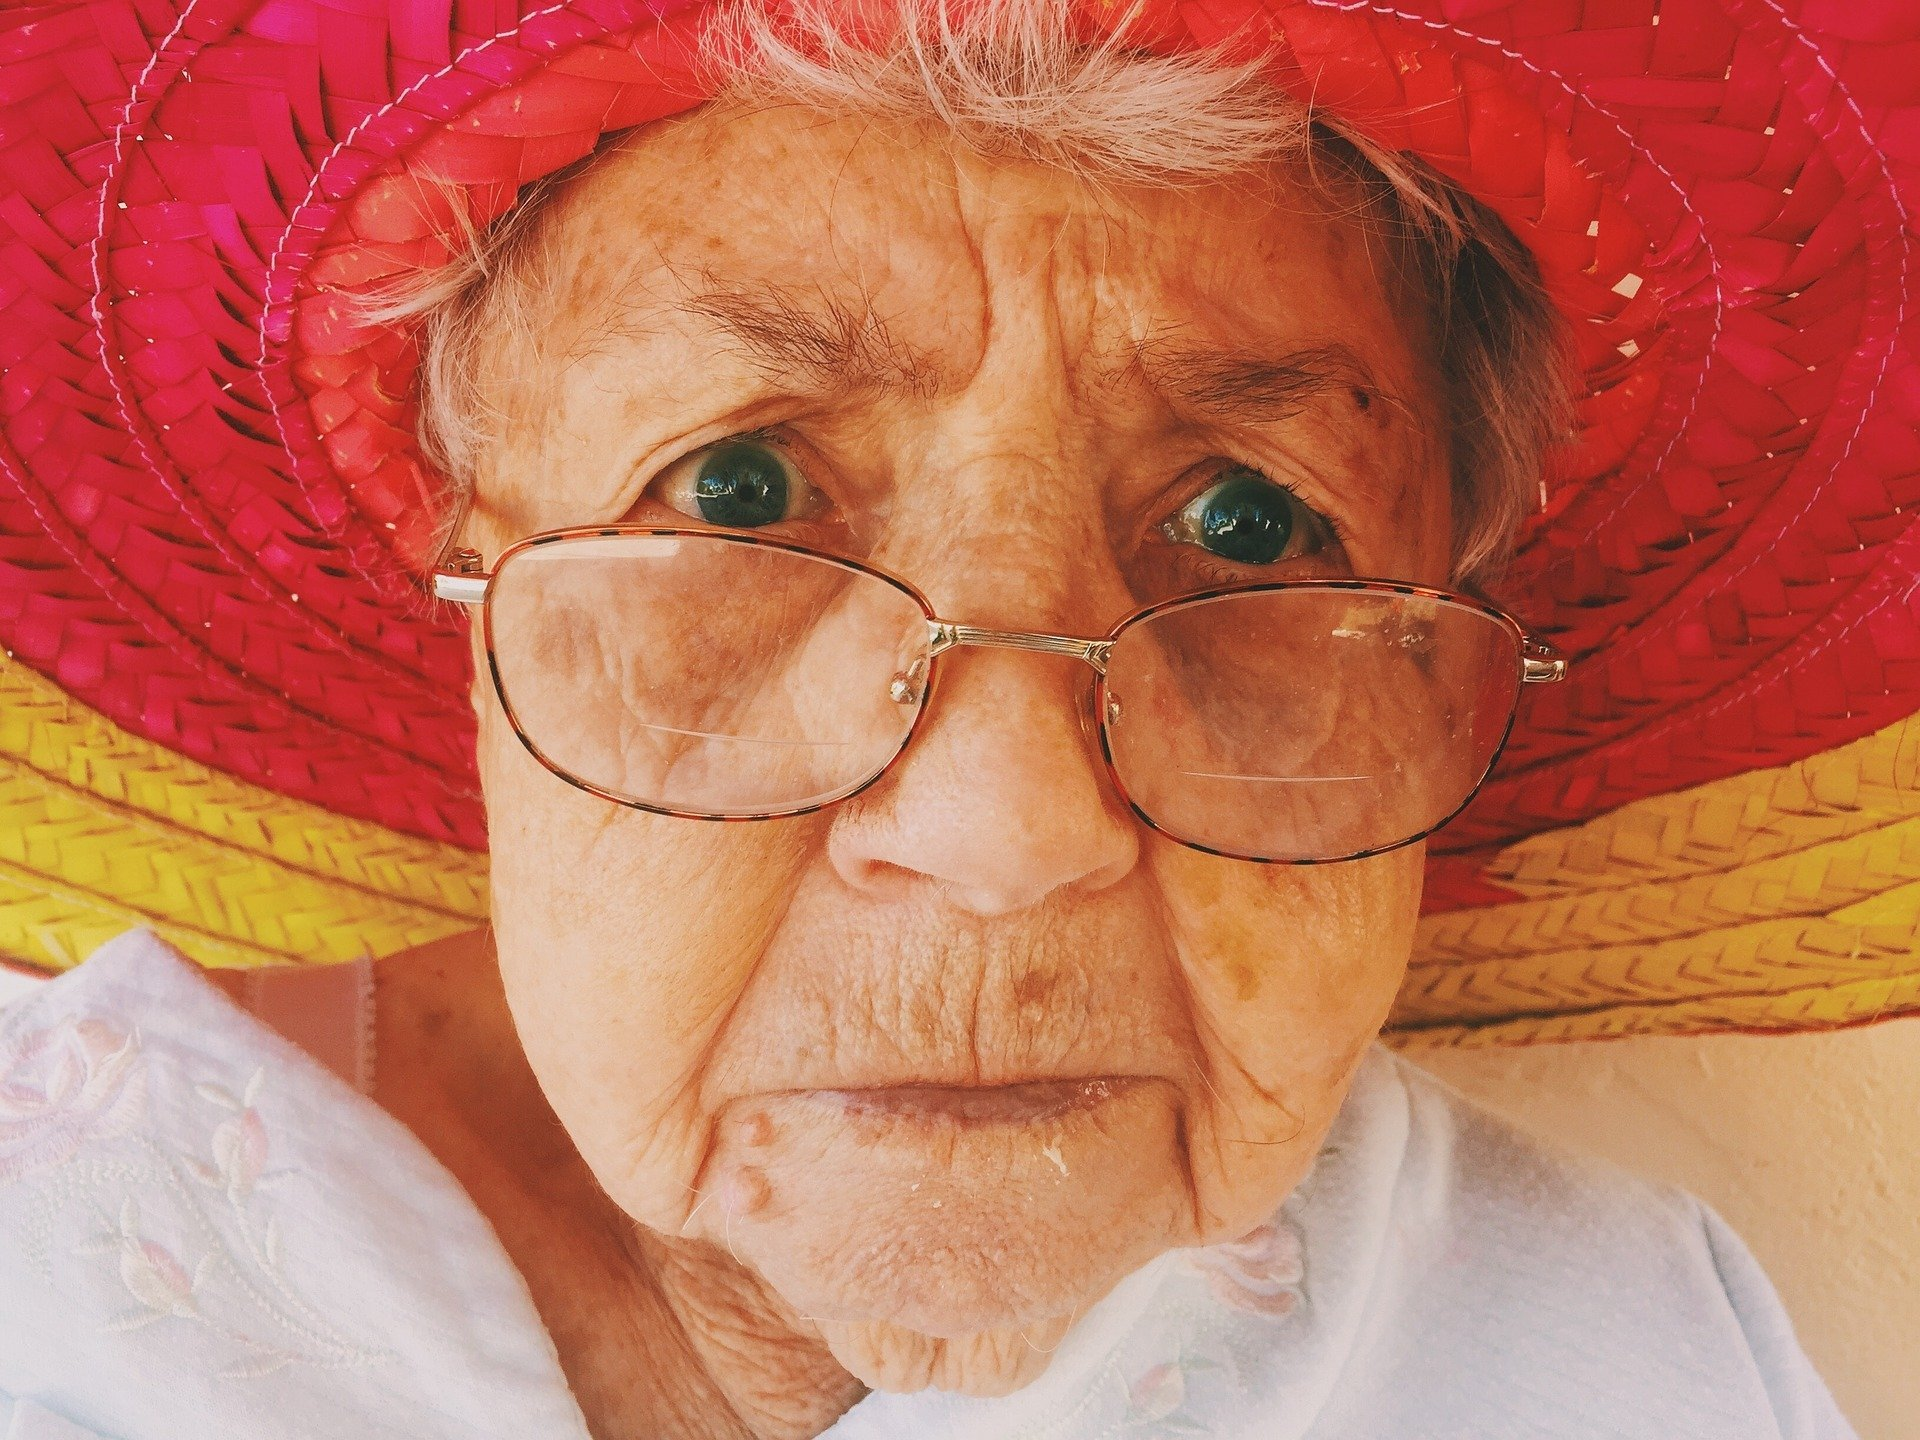 Old woman with a hat. | Source: Pixabay